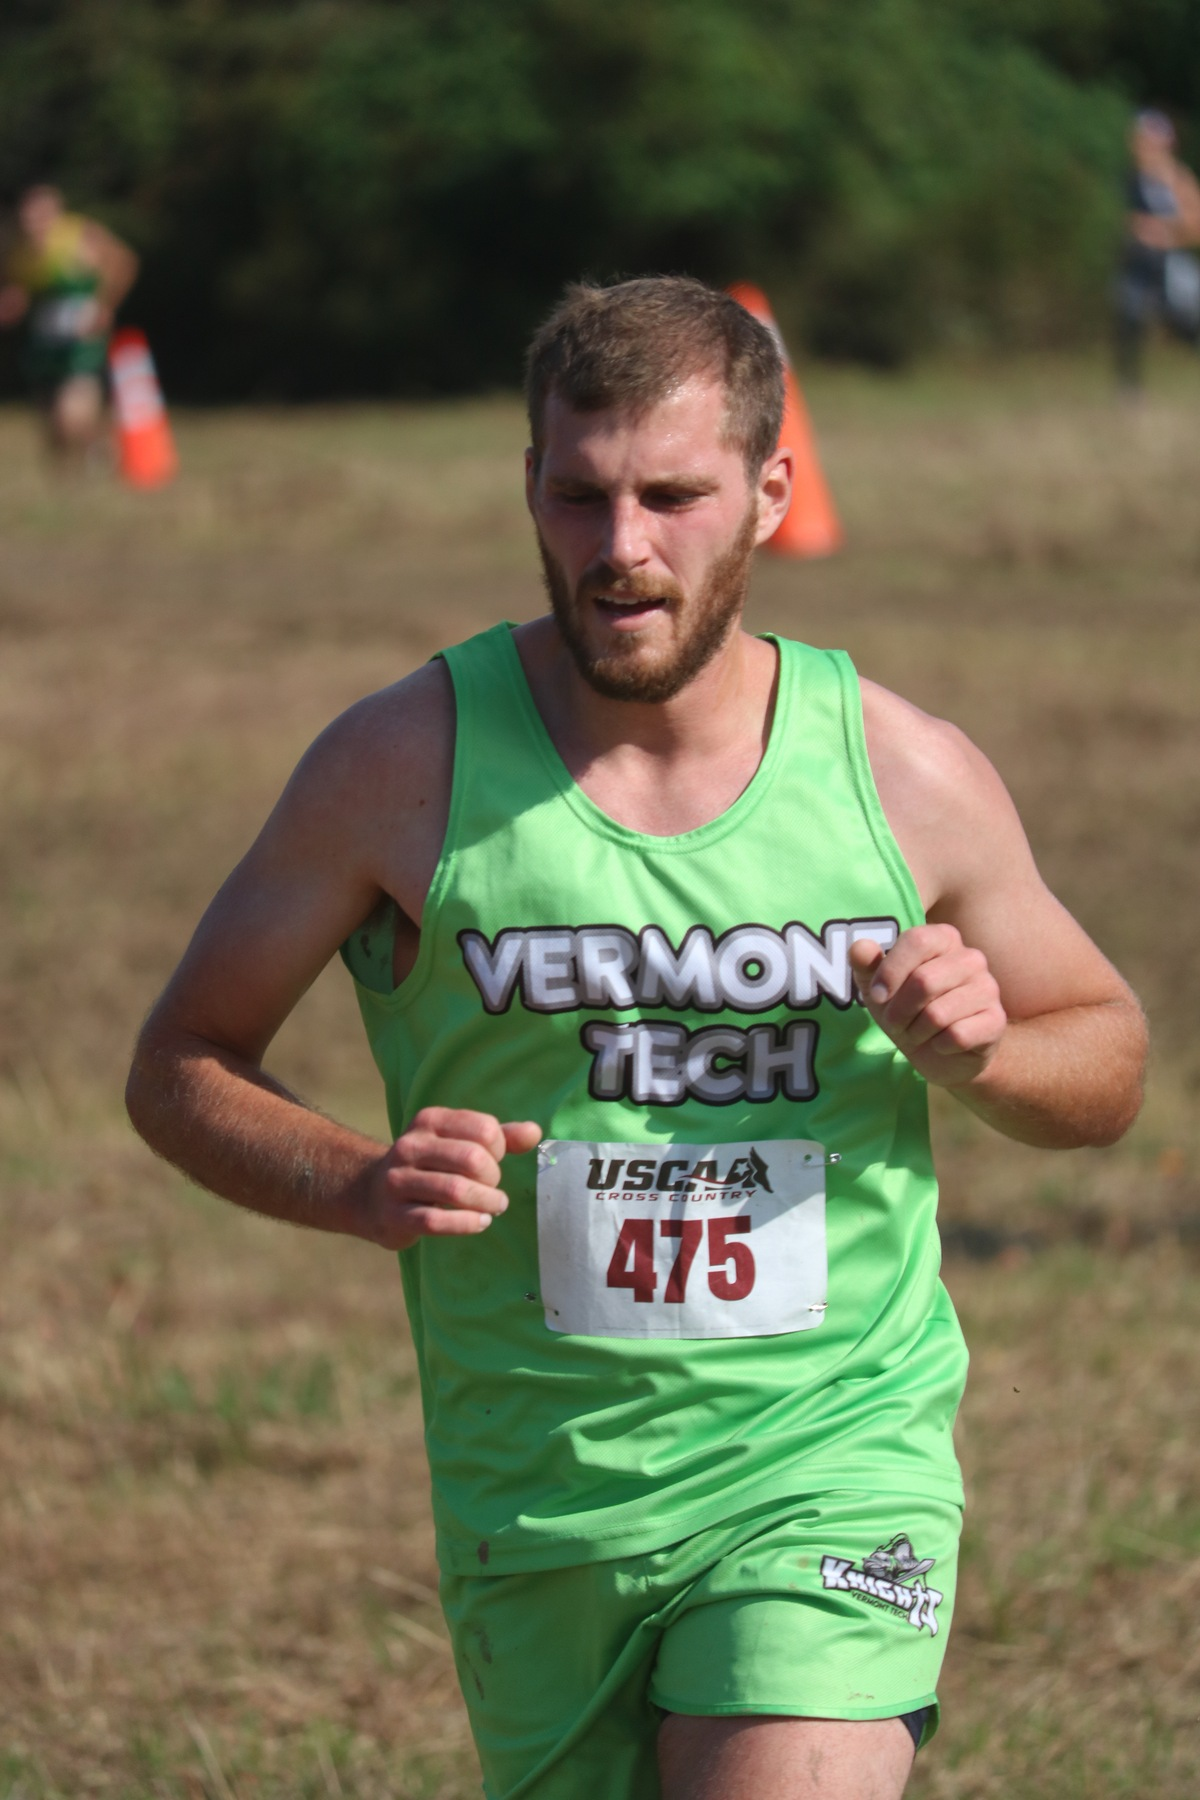 Vermont Tech runners shine at USCAA National Championships